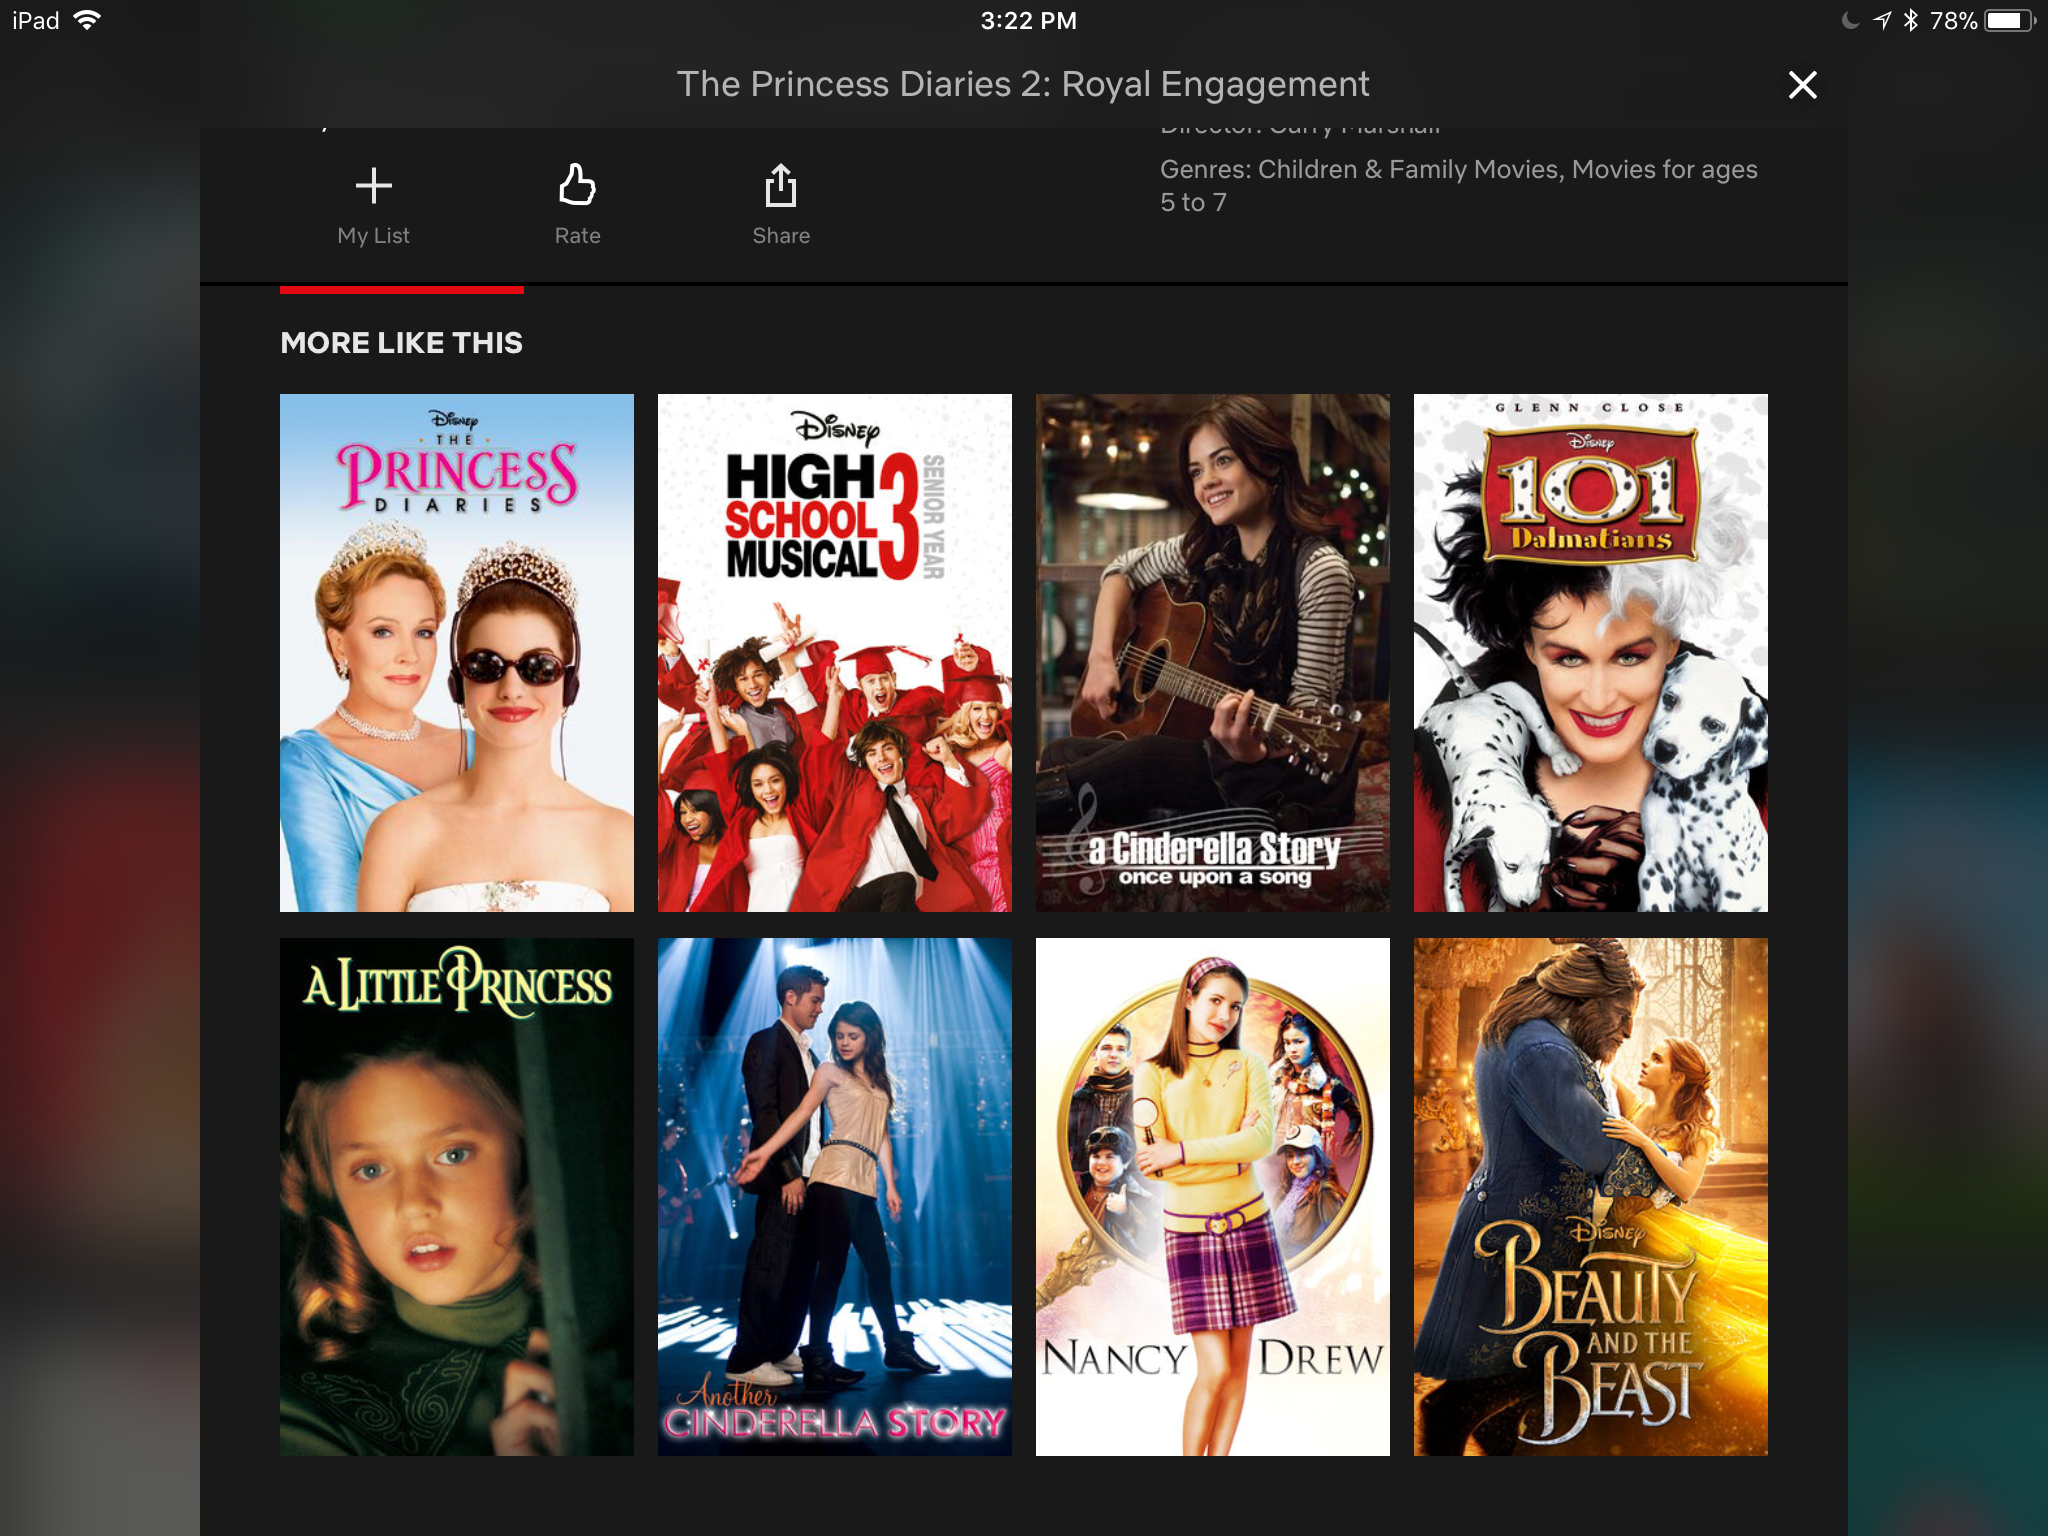 A screen of recommended films including The Princess Diaries 2, High School Musical 3, 101 Dalmations, and others selected by Netflix's personalization system